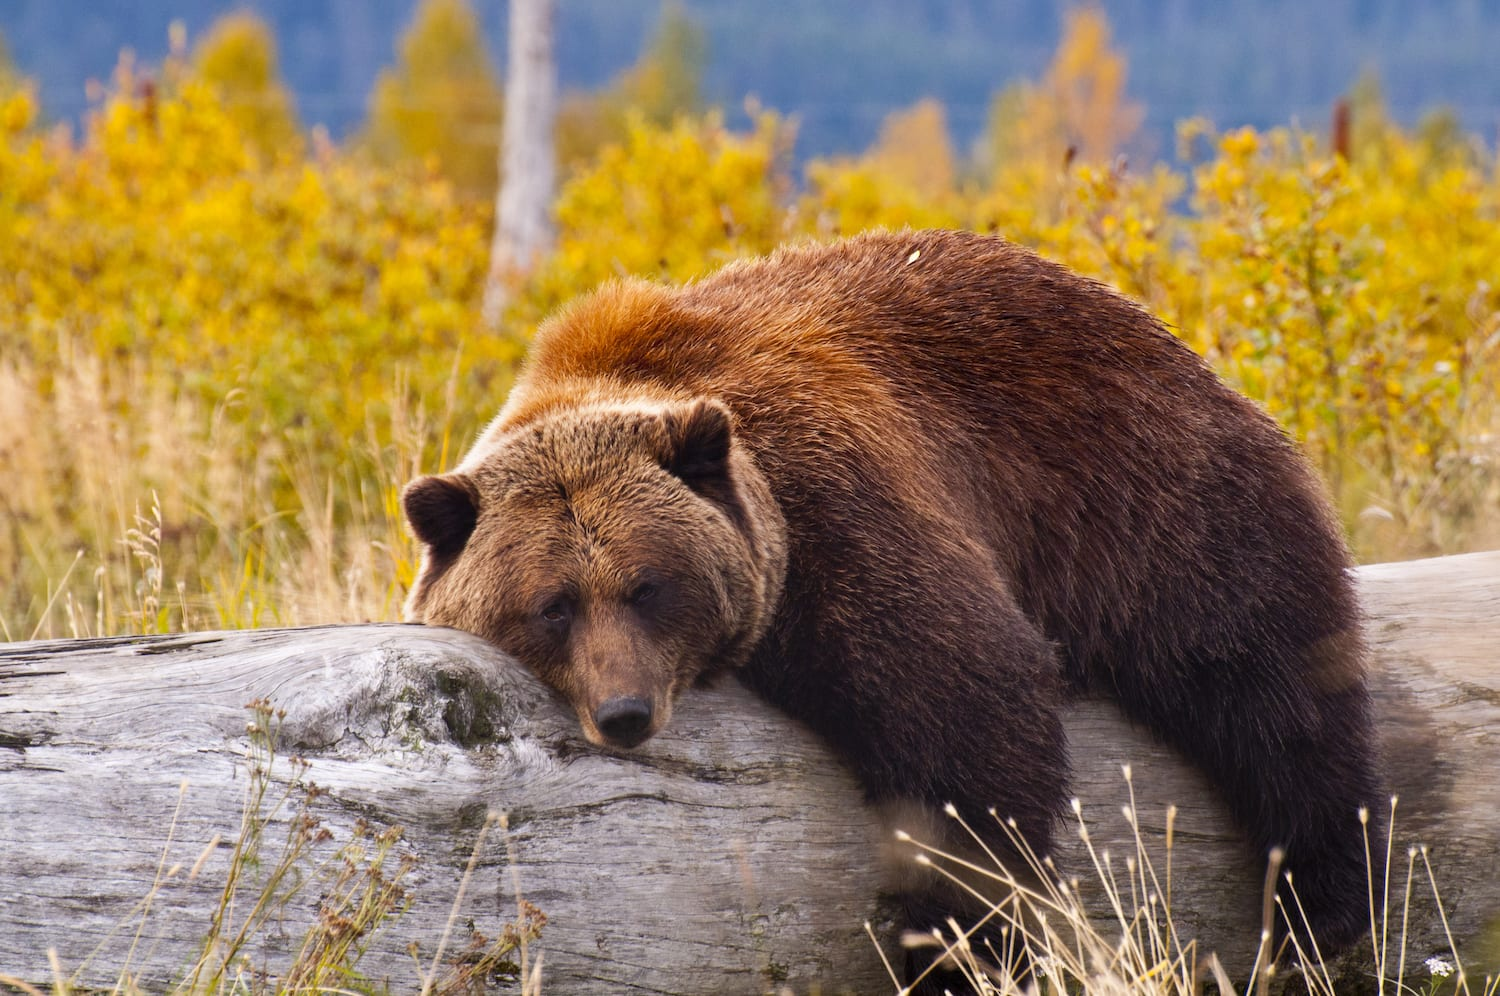 grizzly bear taking a nap on a log